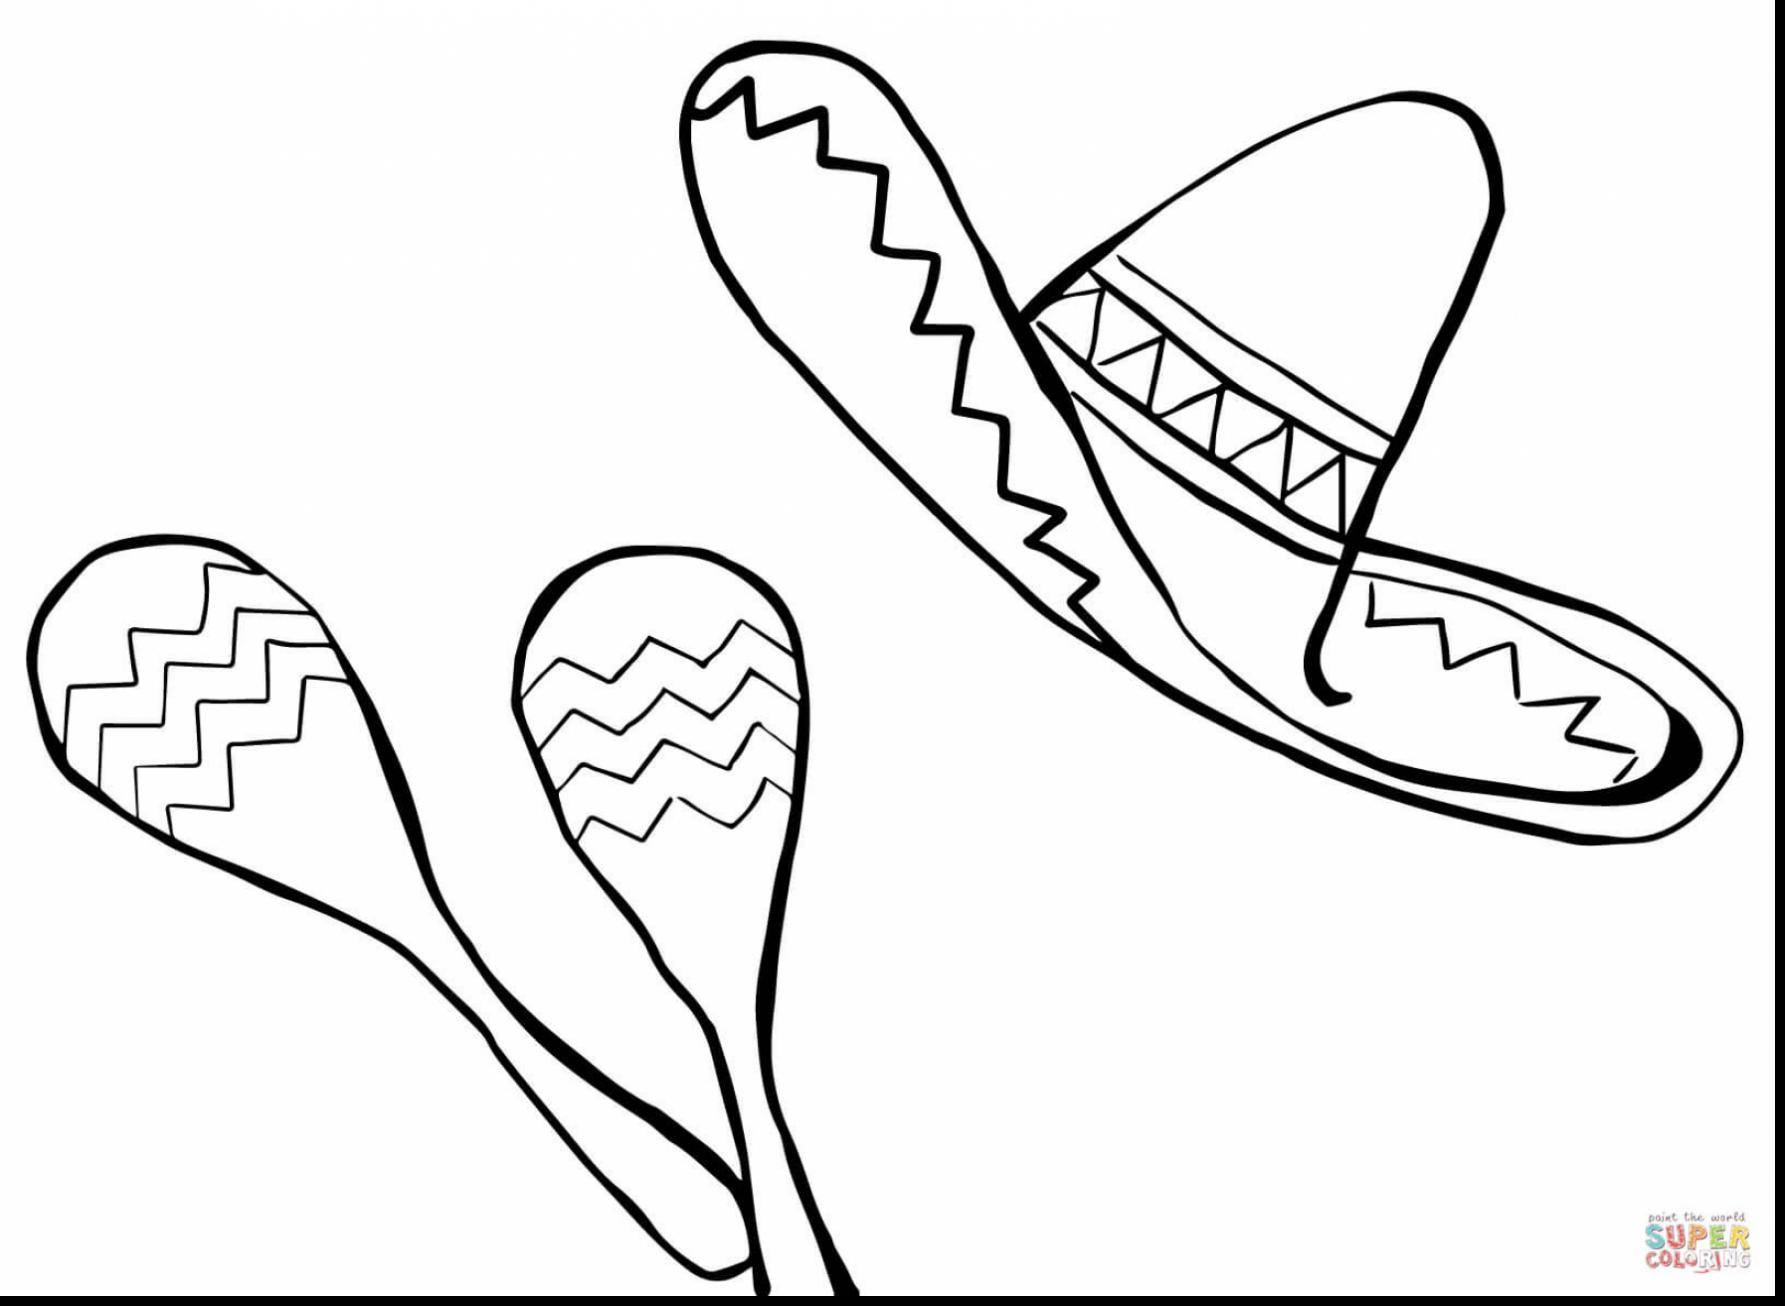 Mexican Sombrero Drawing at GetDrawings.com | Free for personal use ...